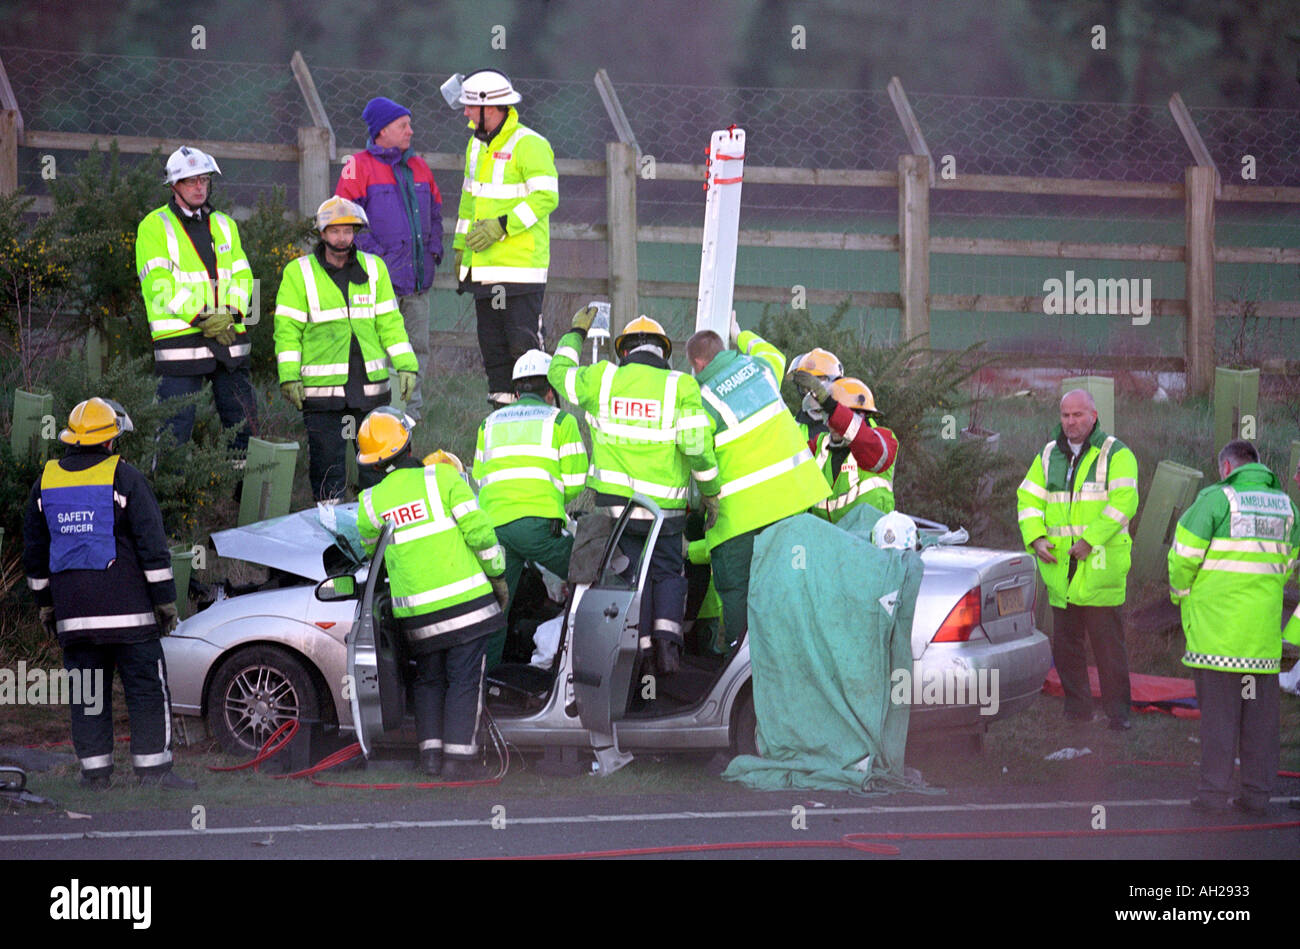 Firefighters cut free a victim of a road traffic accident Stock Photo